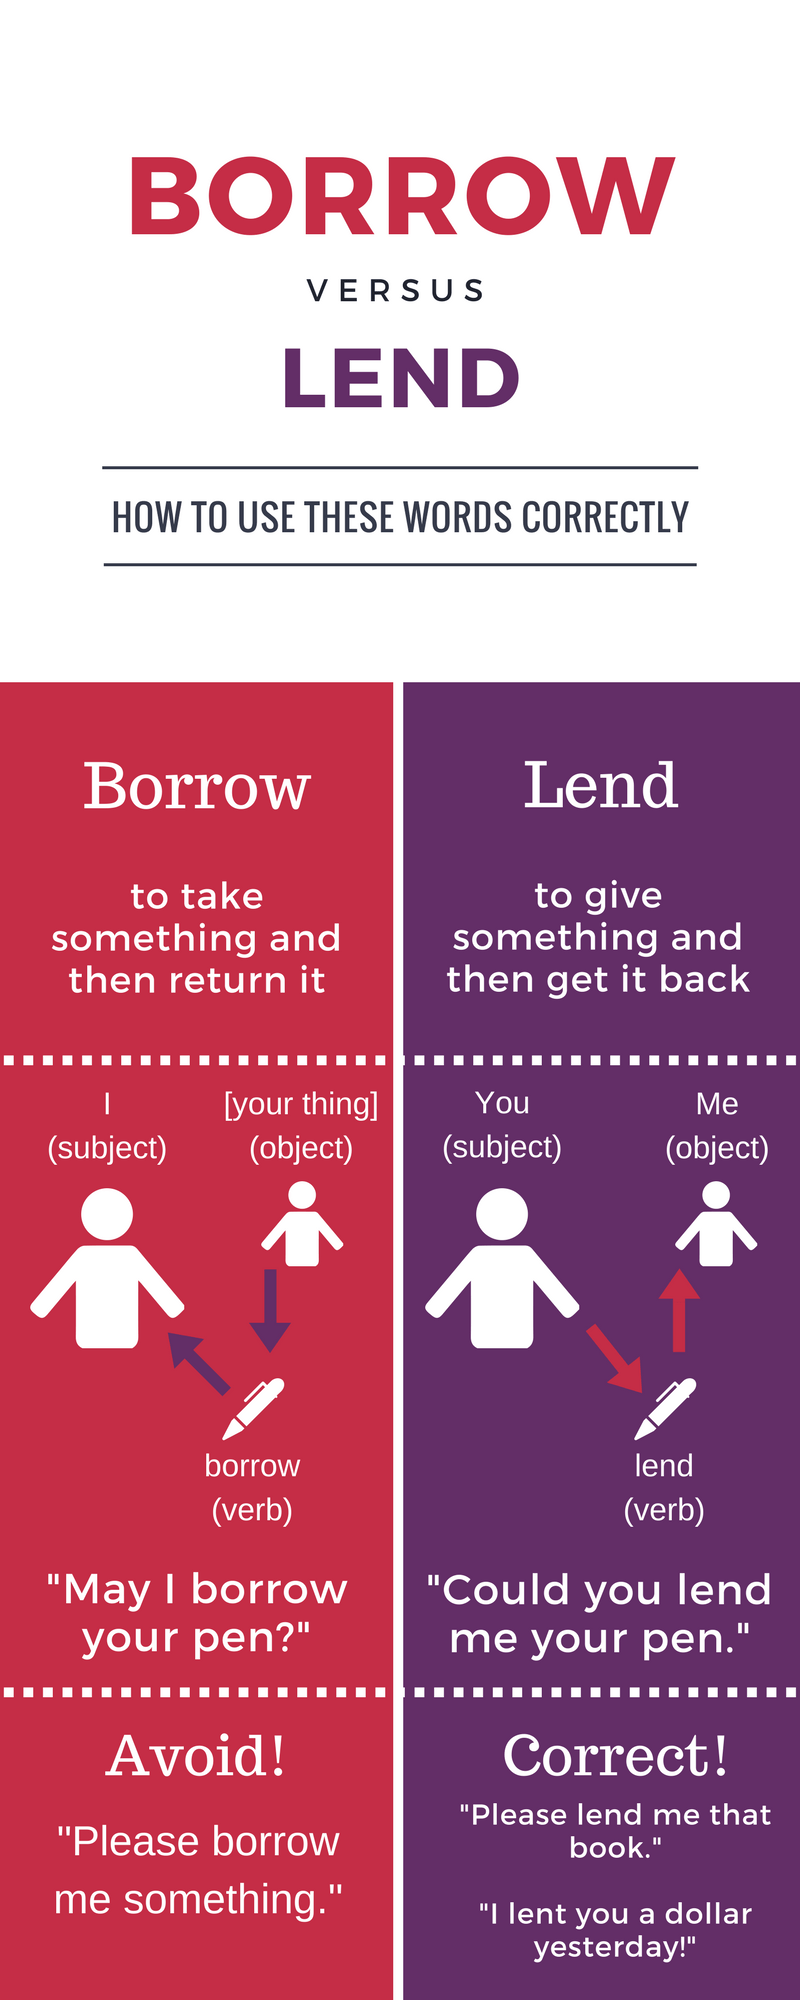 Grammar Infographic - Borrow vs Lend